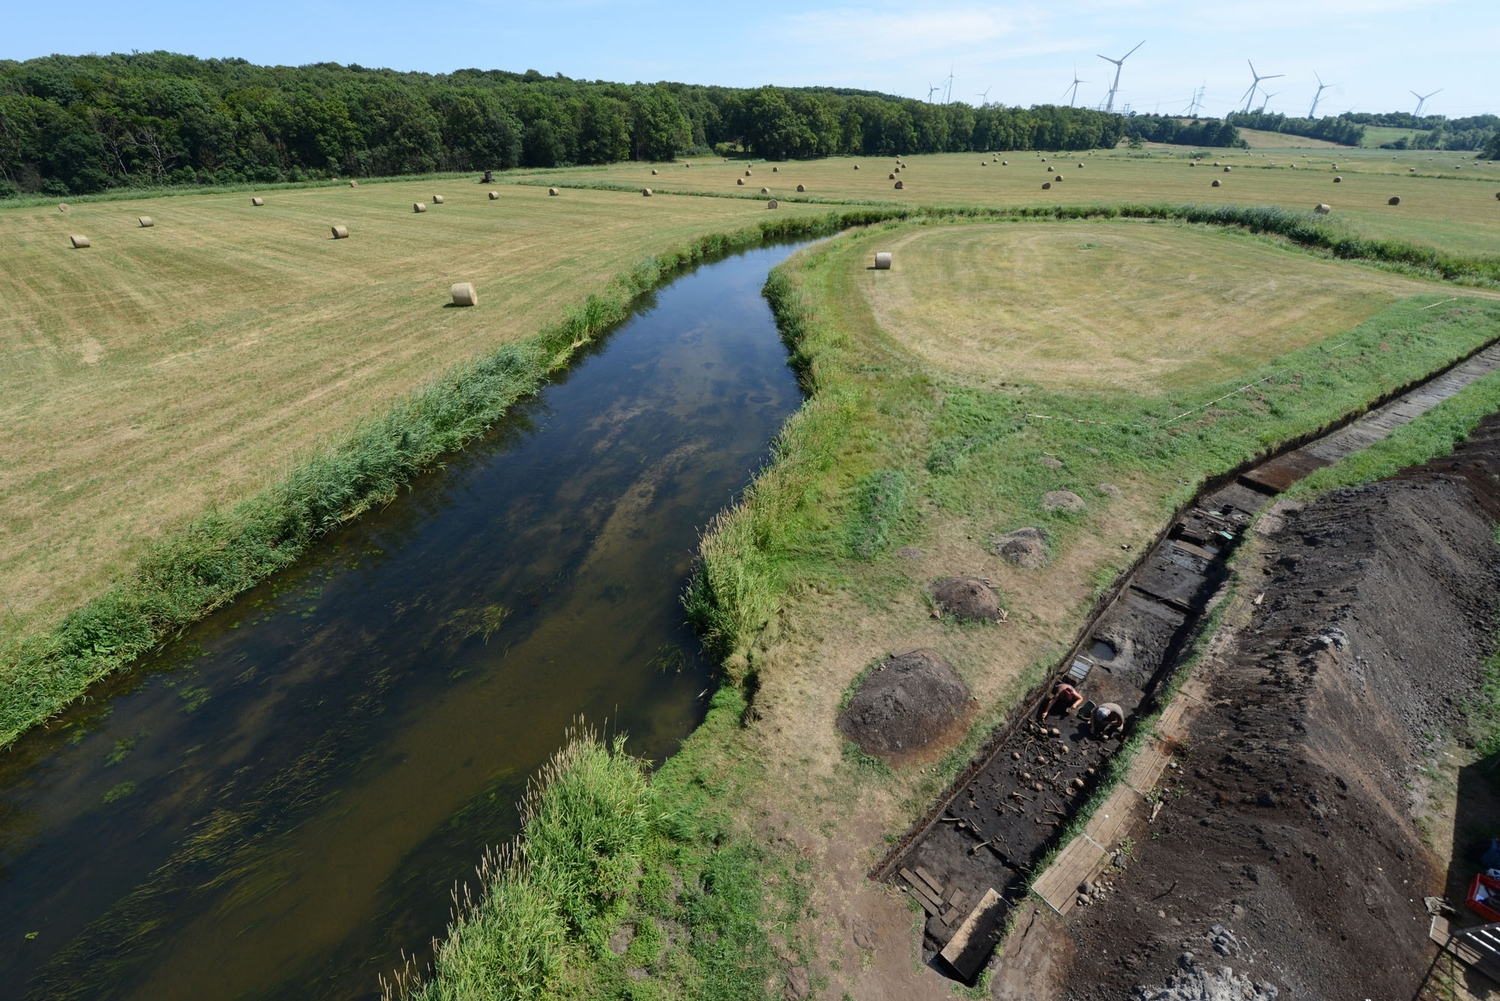 View of the excavation site close to the Tollense river in Weltzin where many human remains and objects were found